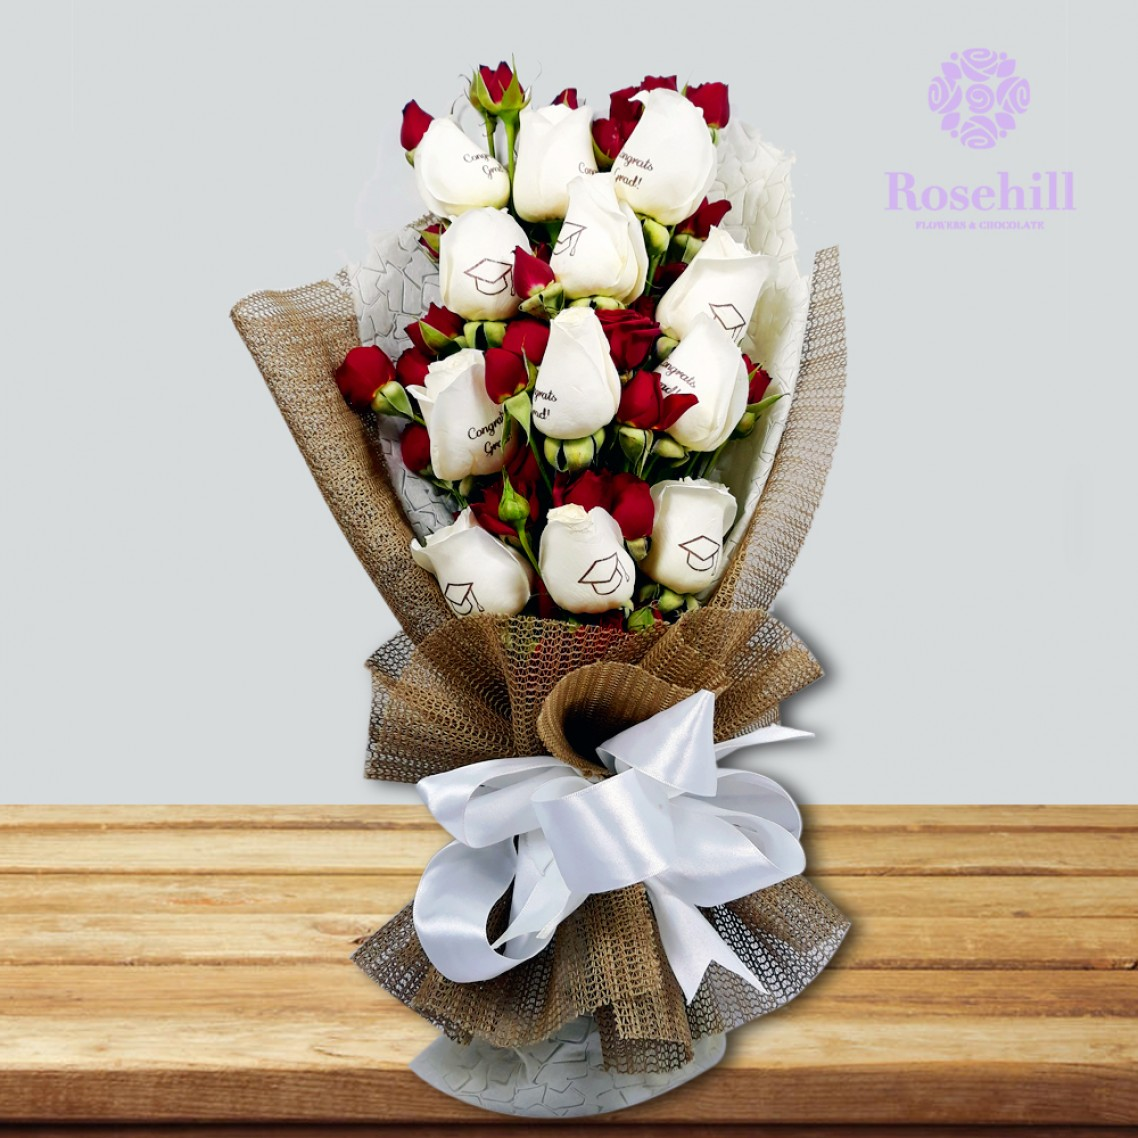 1524675402-h-250-_Rosehill's Graduate Bouquet with Spray Roses- White.jpg